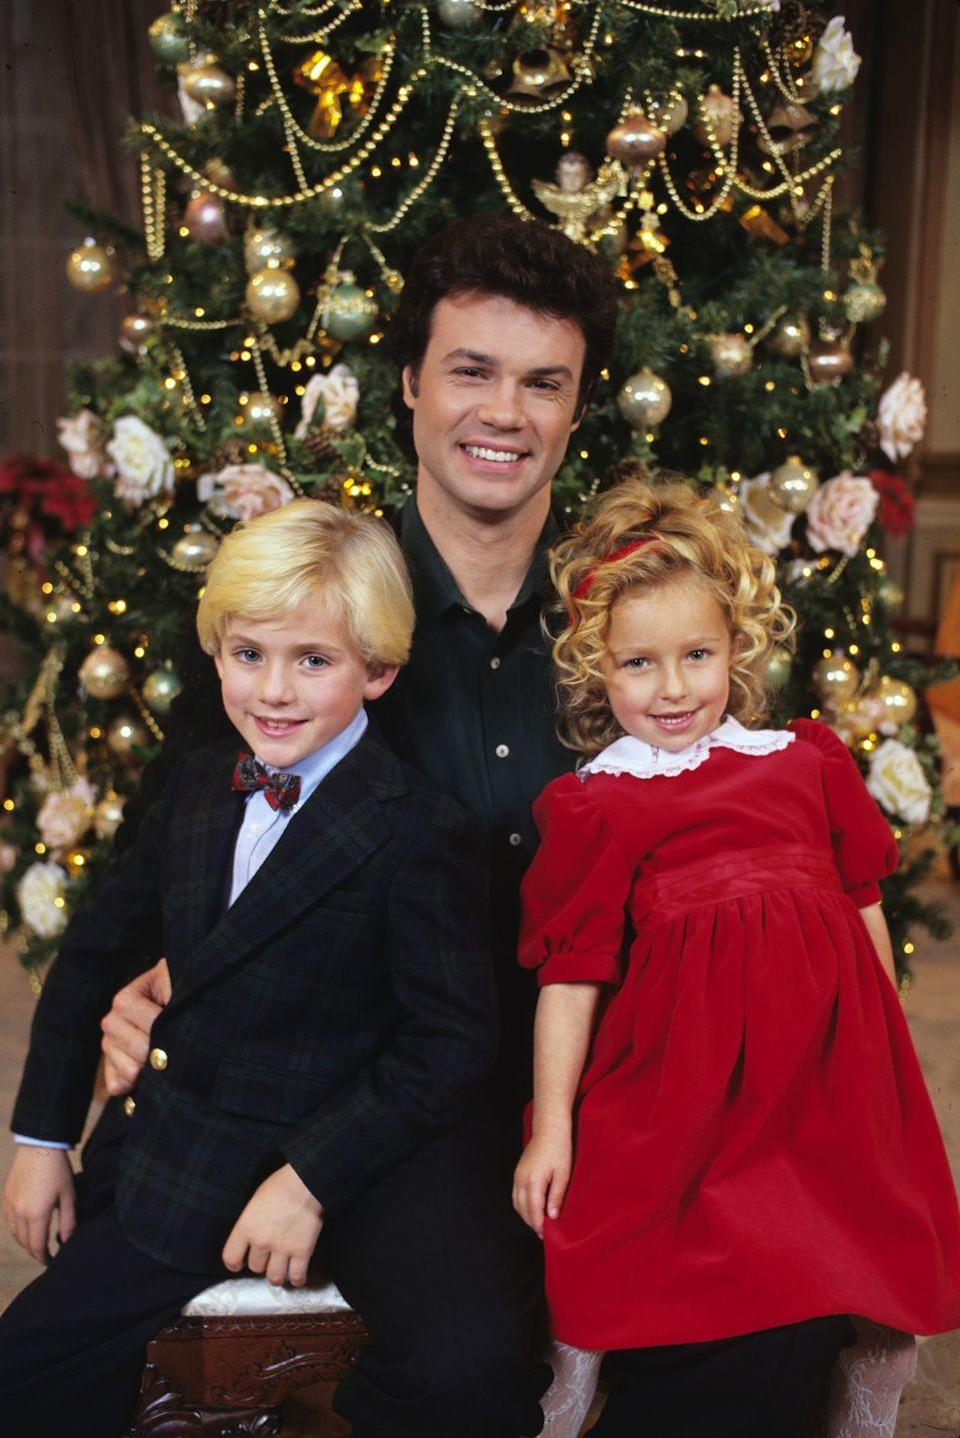 <p>How adorable does the <em>Nashville</em> actress look here? Hayden got her start young, both on shows like <em>One Life to Live </em>and movies like <em>Remember the Titans</em>.</p>